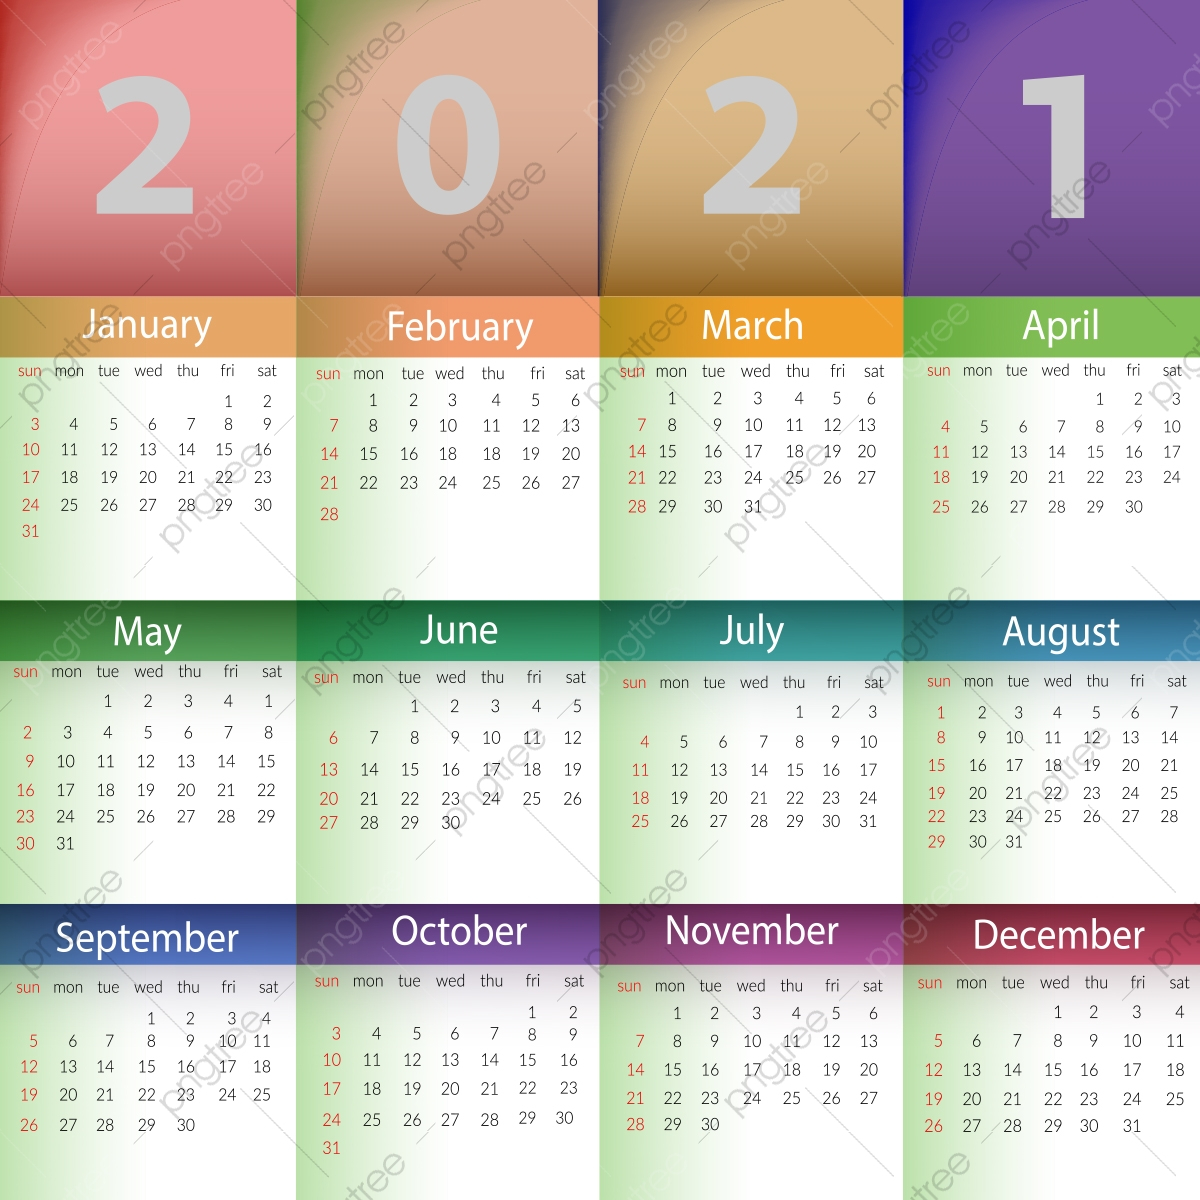 pngtree 2021 calendar template with background design png image